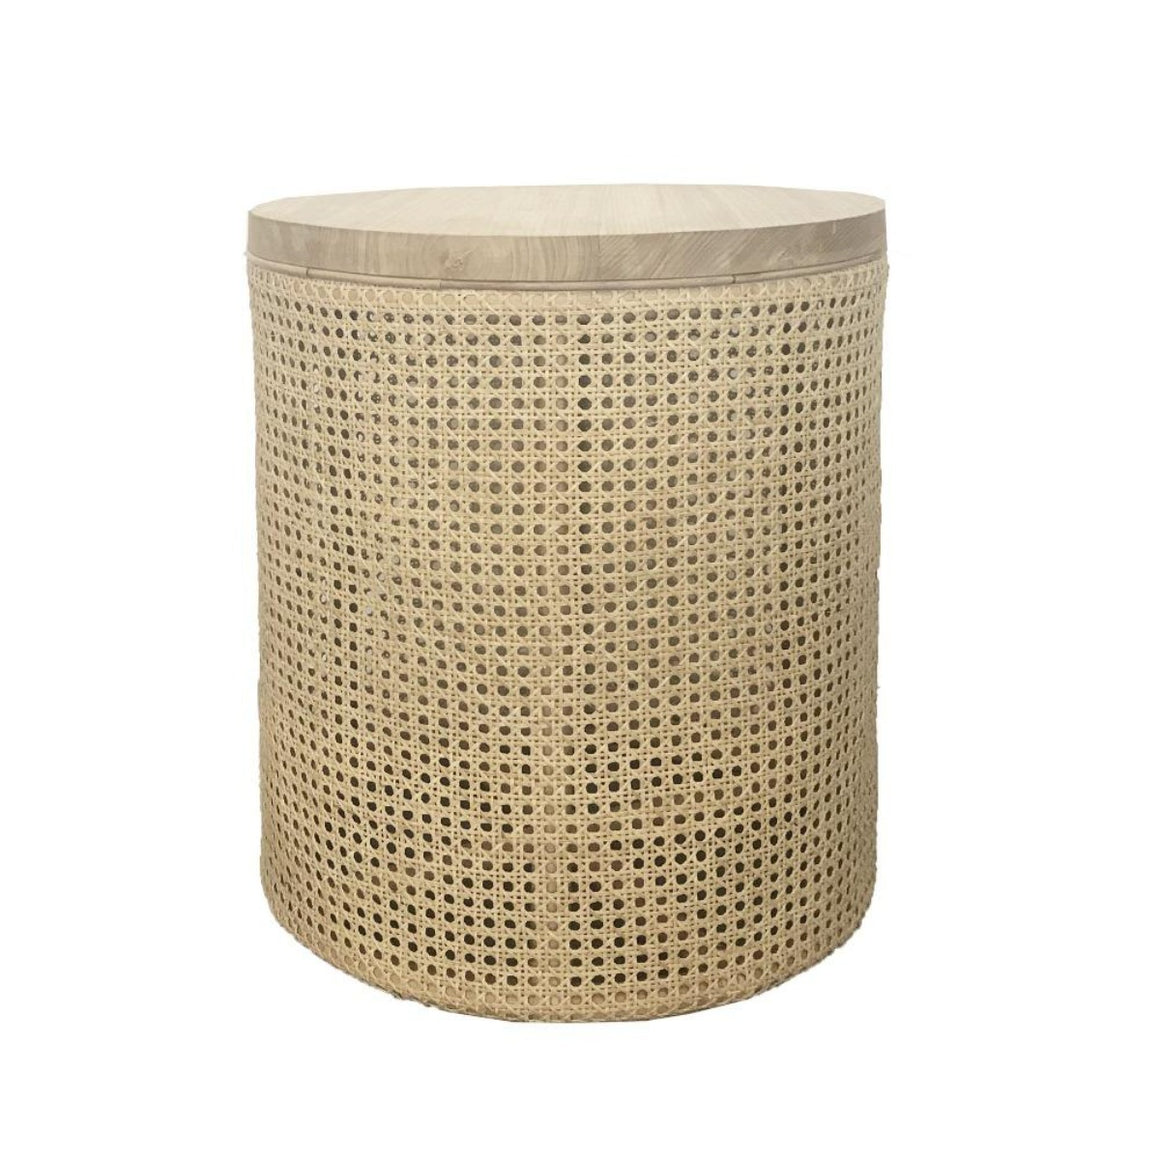 Zoe round wood & rattan Side Table MRD Home